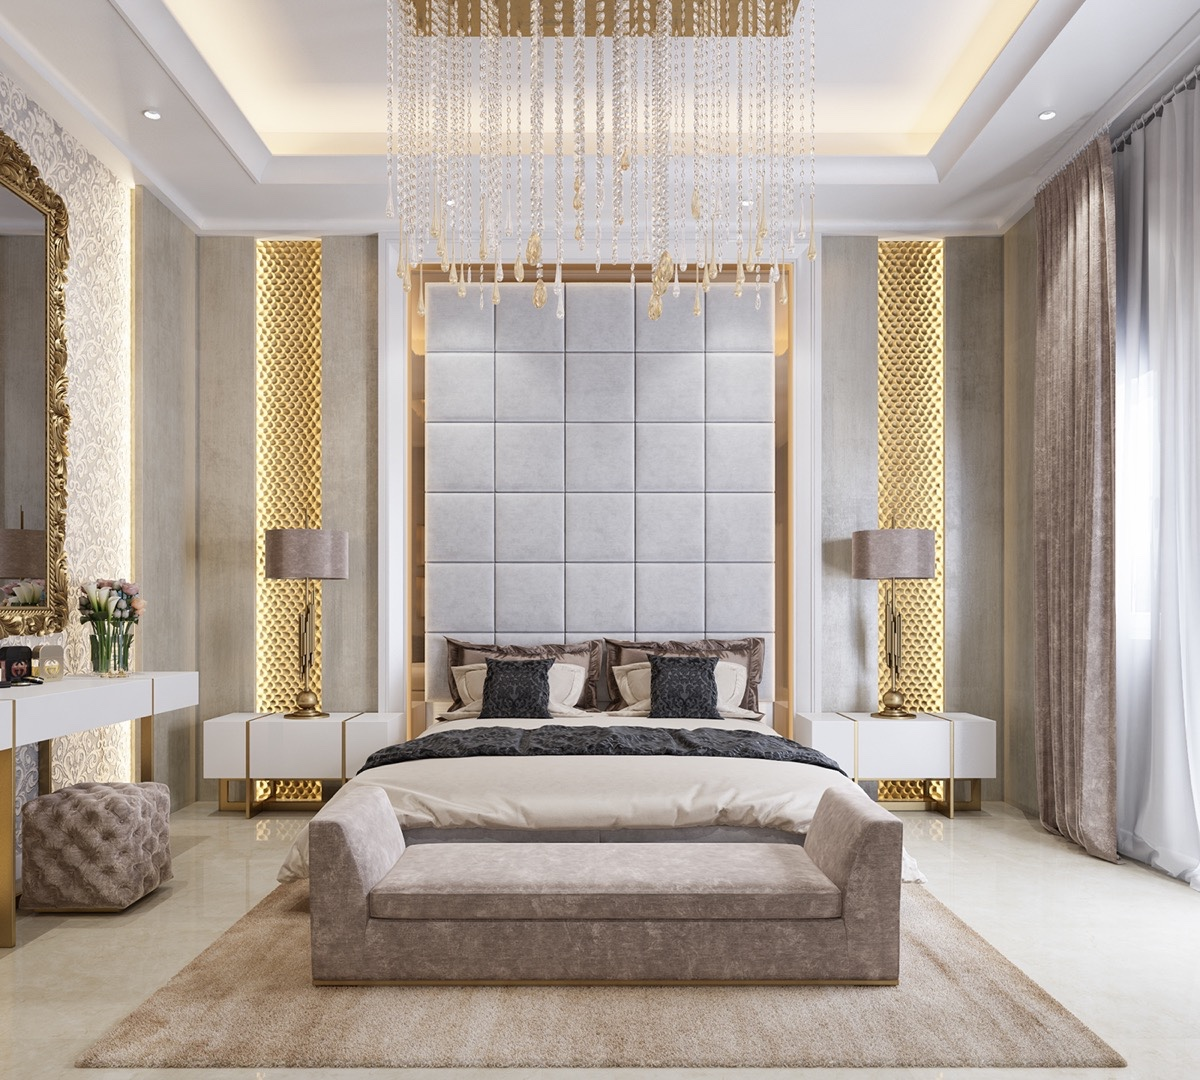 3 kind of elegant bedroom design ideas includes a brilliant decor that very suitable to apply - Luxury bedroom design ...